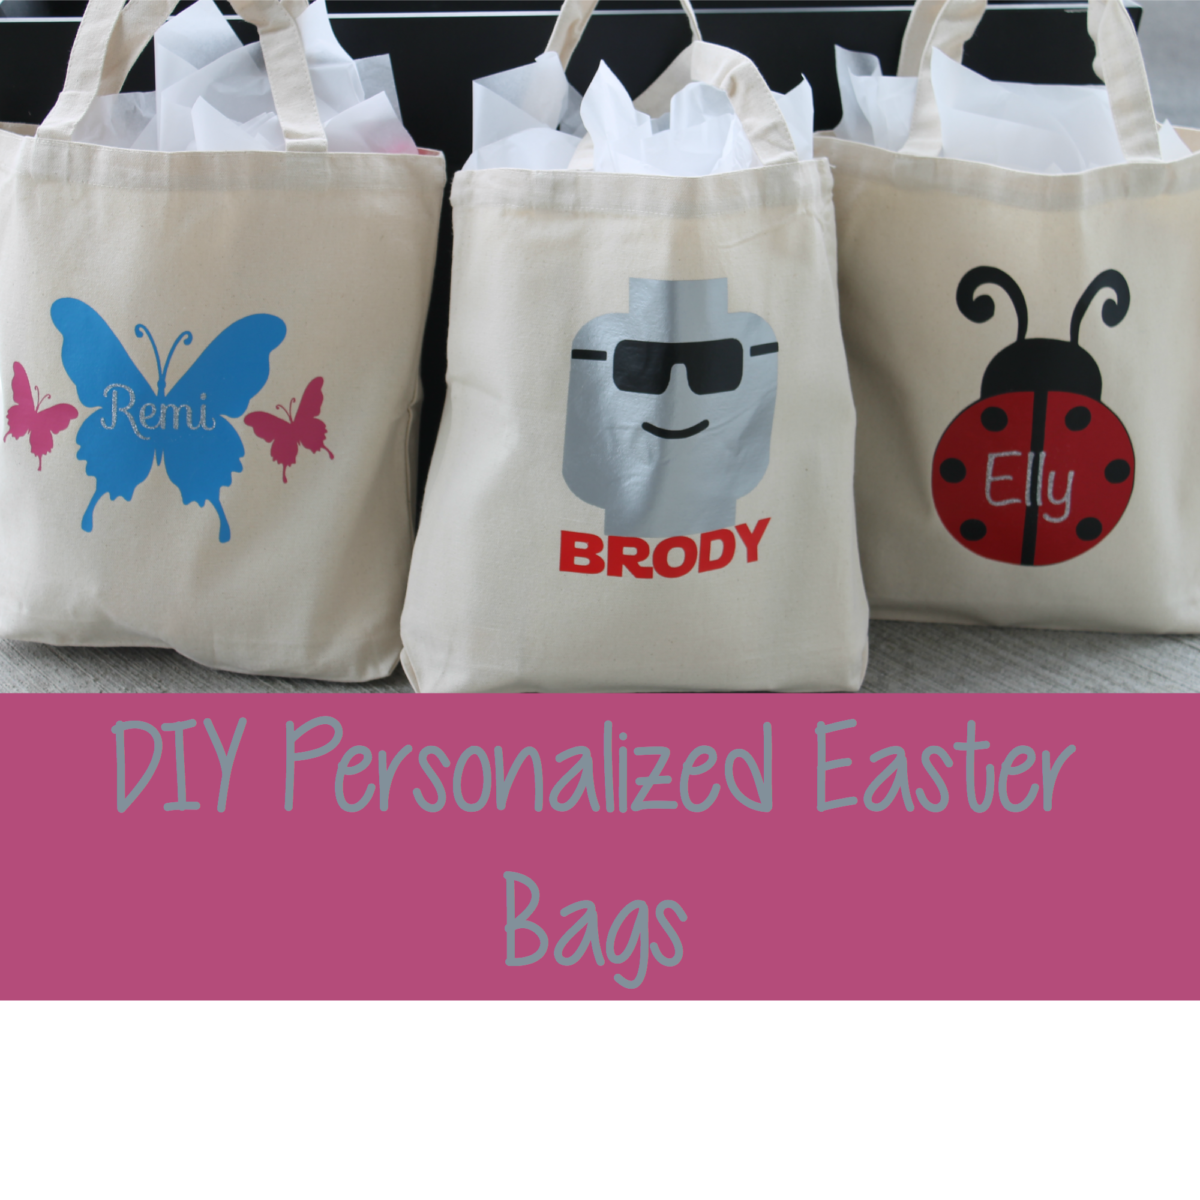 DESIGN YOUR OWN Canvas Tote Bag - Add Your Text Print - Reusable% Cotton Shopping Bag - Personalized Bag - Custom Canvas Tote. by Printualist. $ $ 13 95 + $ shipping. 5 out of 5 stars 2. Product Features Create custom bags and personalized totes at Printualist.